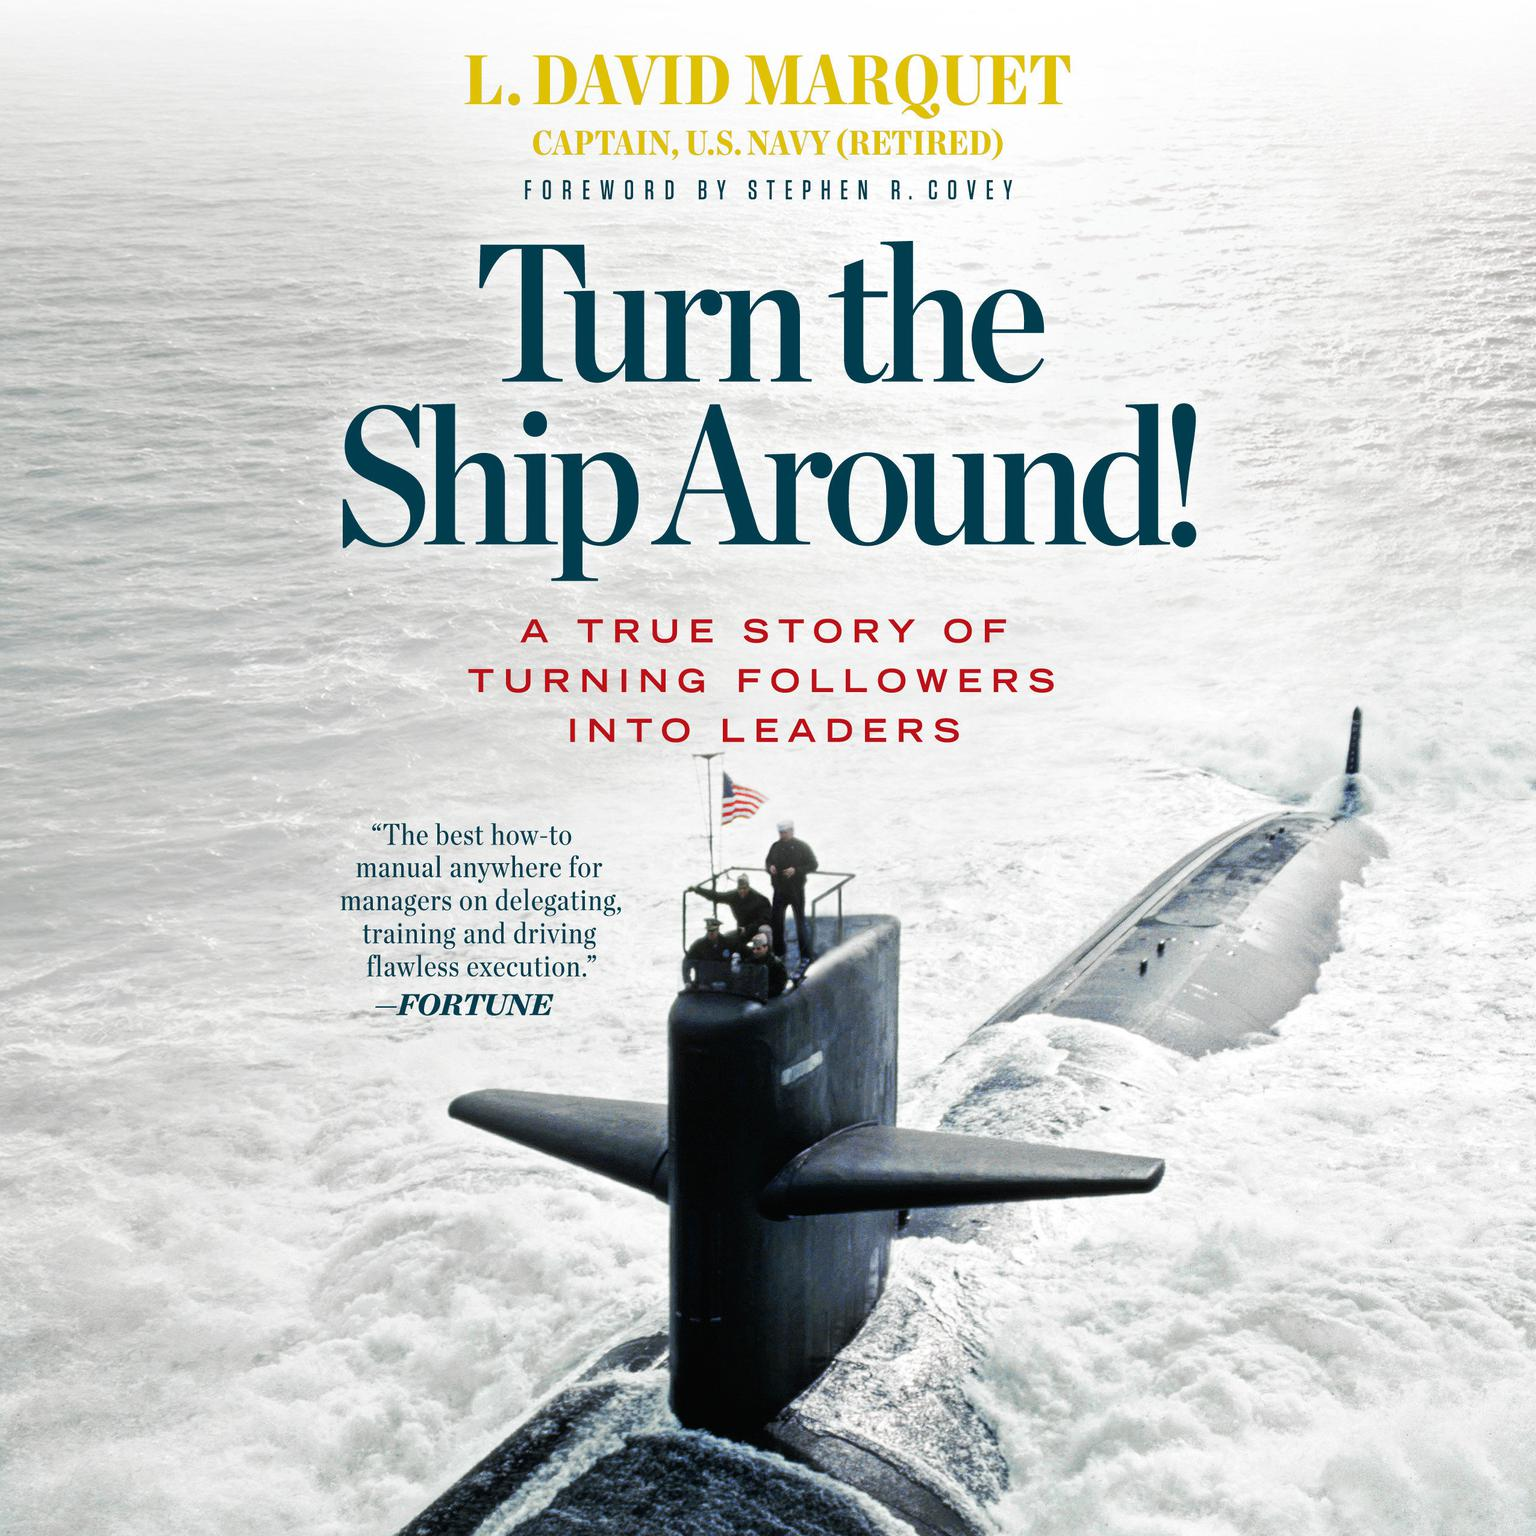 Turn the Ship Around!: A True Story of Turning Followers into Leaders Audiobook, by L. David Marquet